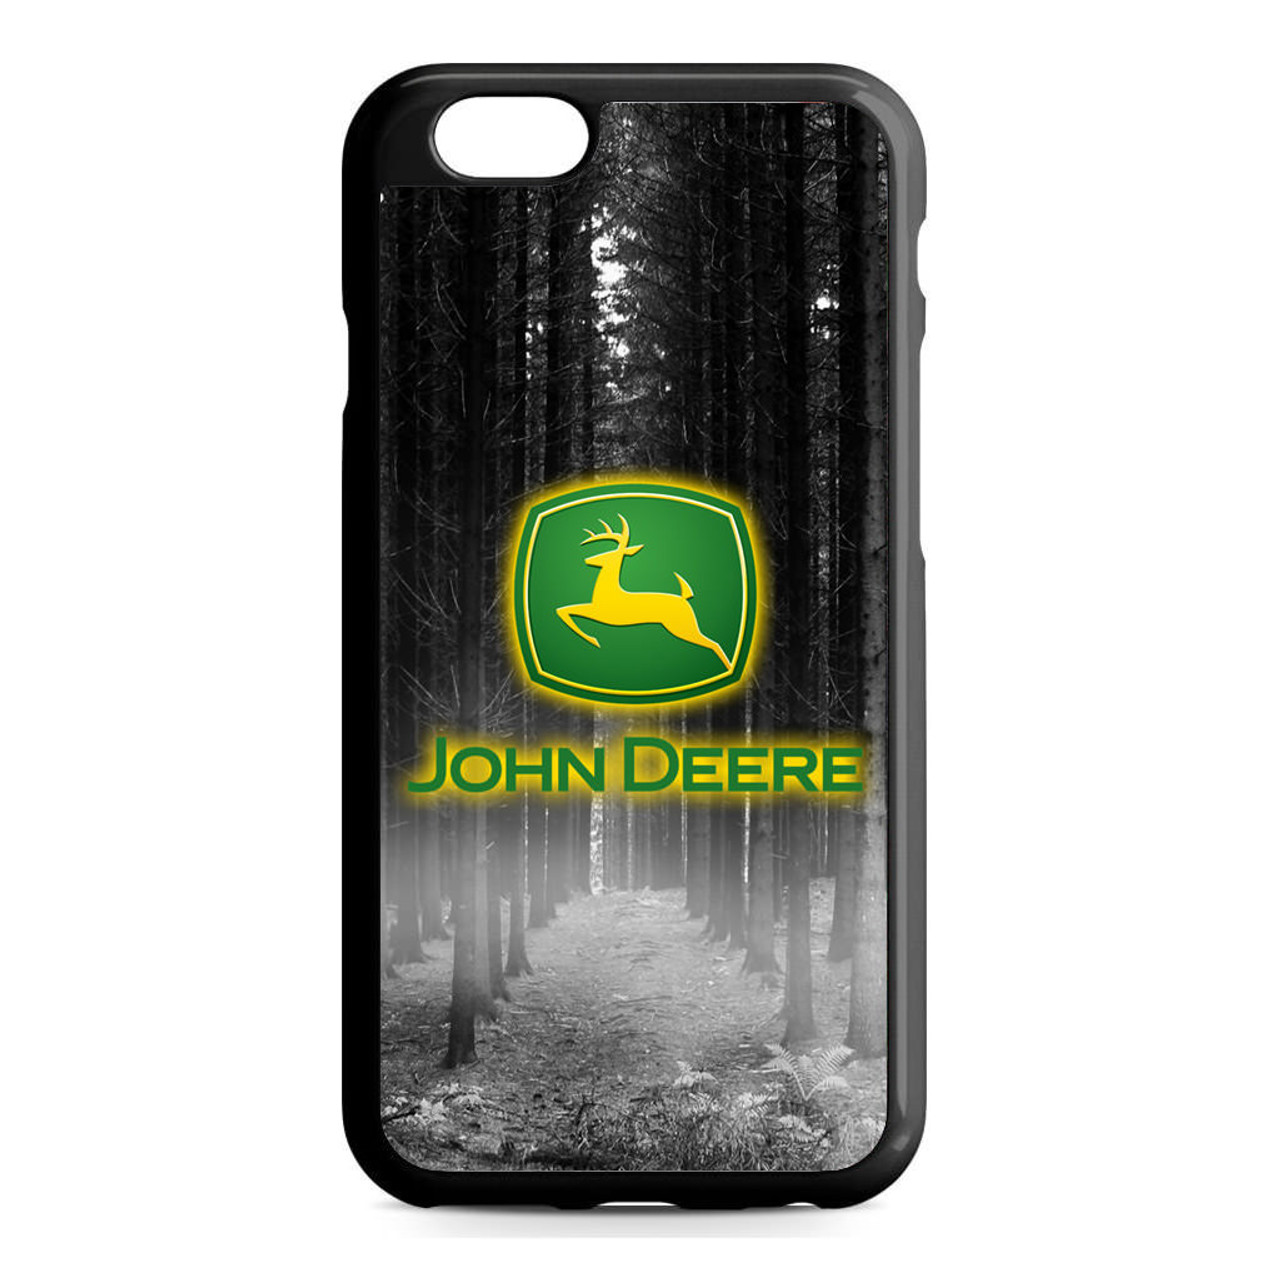 new concept 09ad3 9684a John Deere iPhone 6/6S Case